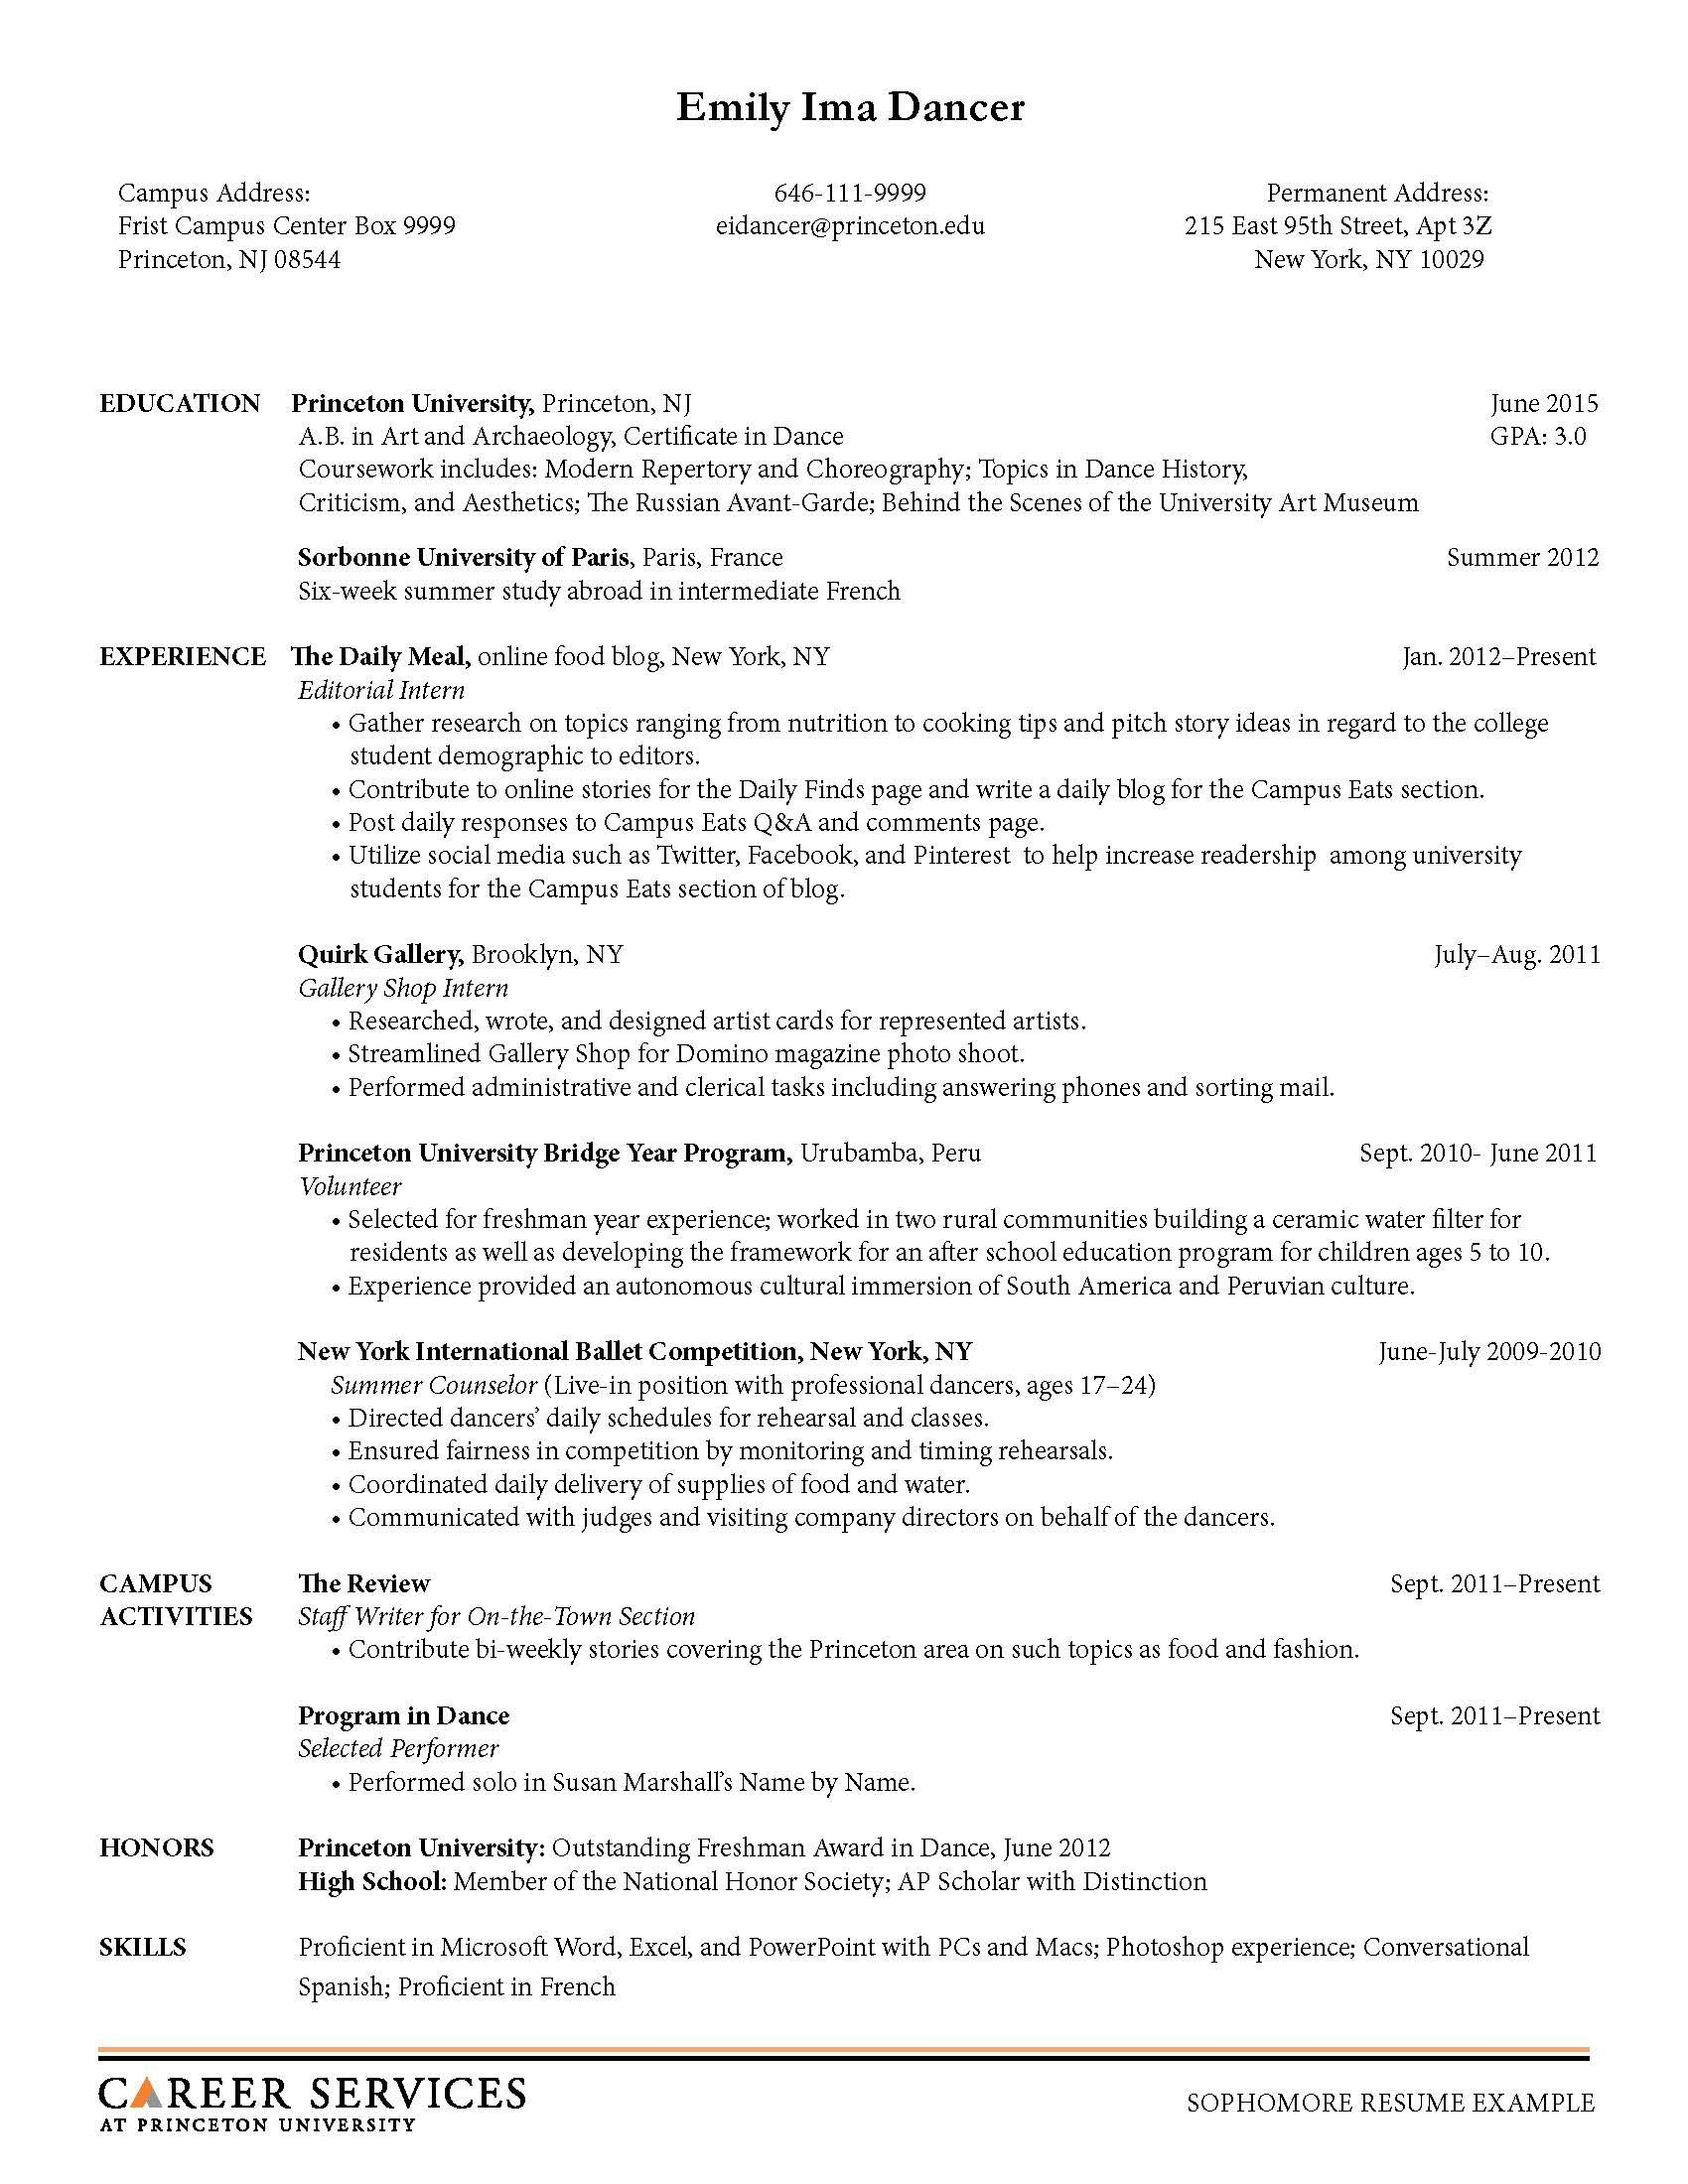 Opposenewapstandardsus  Mesmerizing Sample Resume Resume And Career On Pinterest With Engaging Resume Skills And Abilities Besides Free Resume Search Furthermore Post Resume Online With Enchanting What Is An Objective On A Resume Also Public Relations Resume In Addition Best Fonts For Resumes And Welder Resume As Well As References Resume Additionally Craigslist Resumes From Pinterestcom With Opposenewapstandardsus  Engaging Sample Resume Resume And Career On Pinterest With Enchanting Resume Skills And Abilities Besides Free Resume Search Furthermore Post Resume Online And Mesmerizing What Is An Objective On A Resume Also Public Relations Resume In Addition Best Fonts For Resumes From Pinterestcom